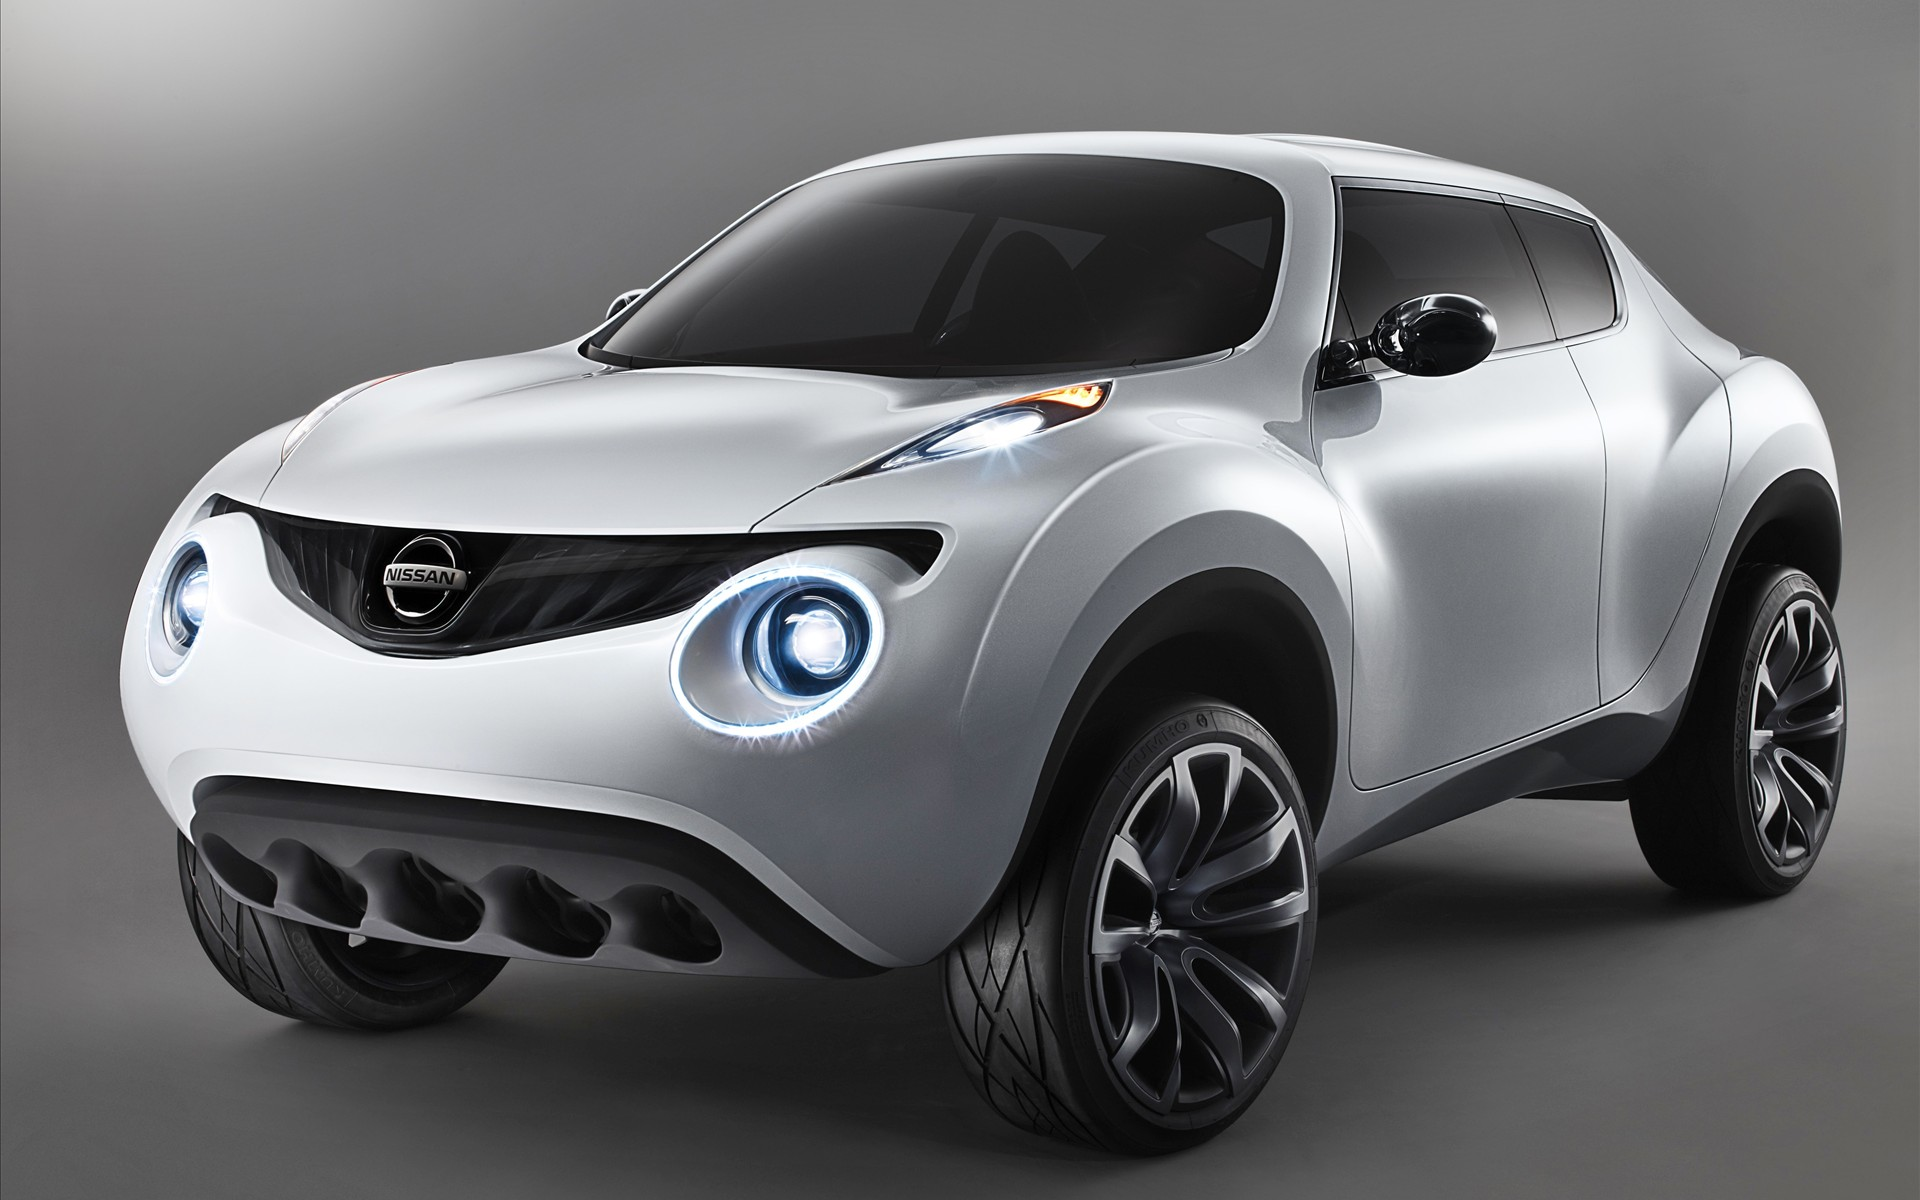 2018 Nissan Qazana Concept photo - 2